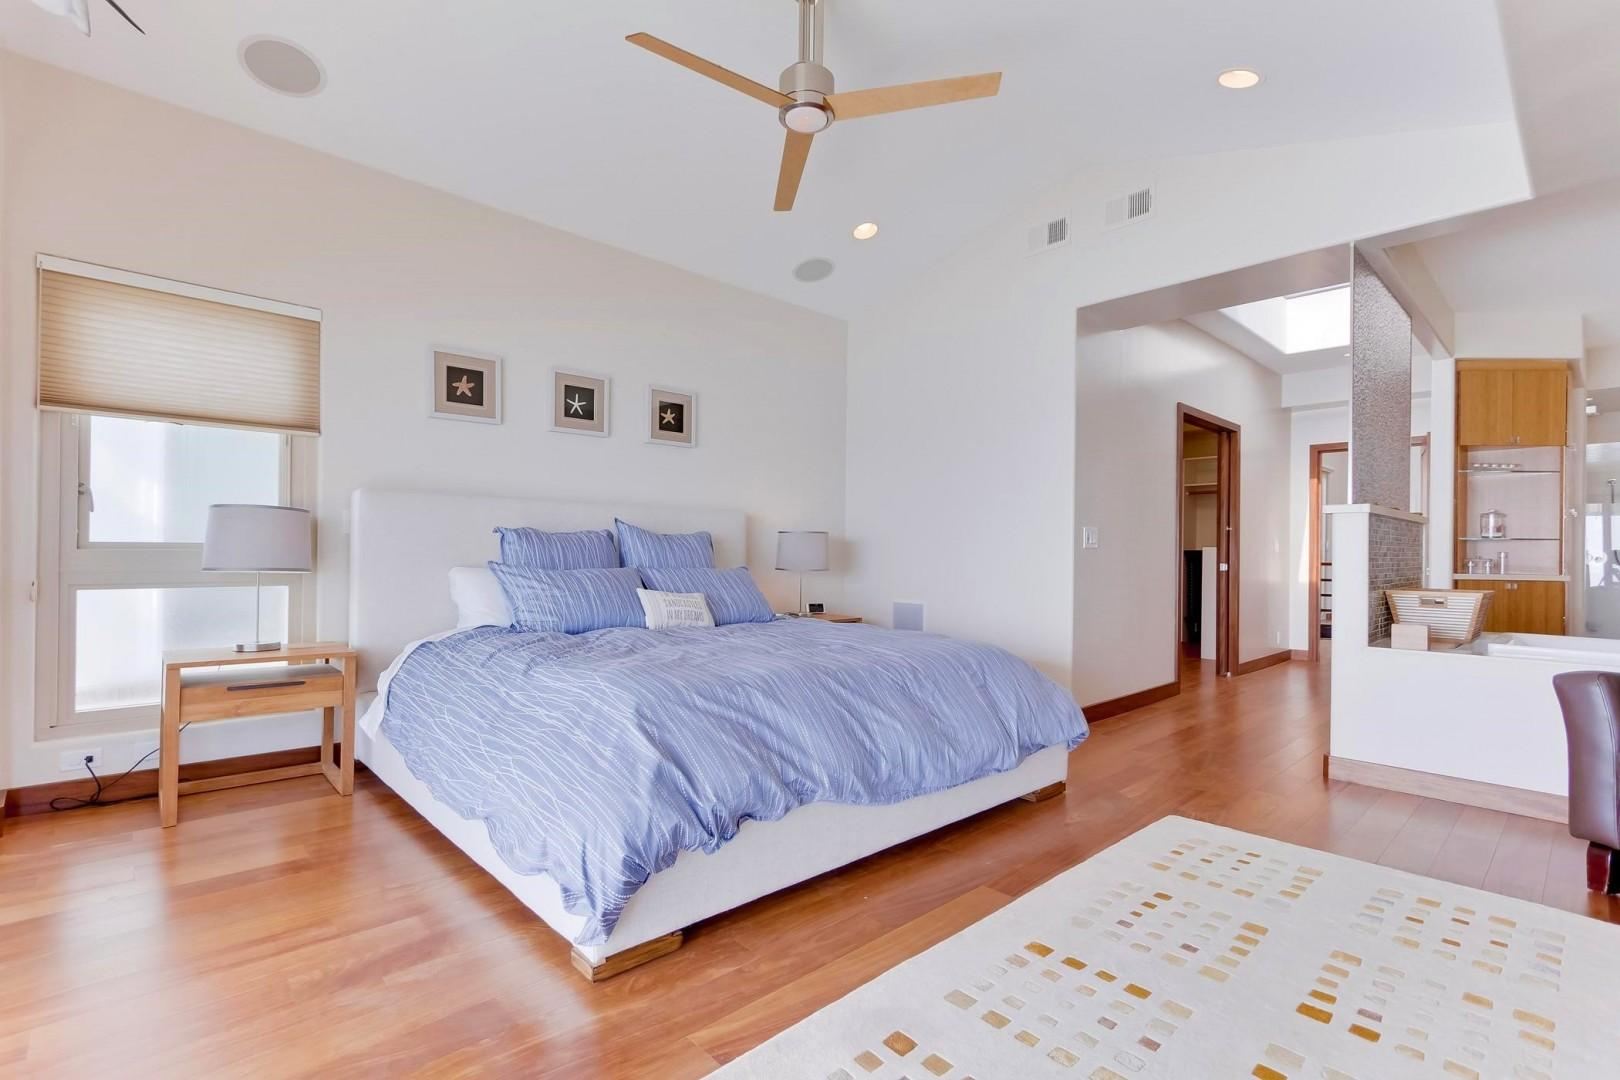 Master suite features a comfy king bed